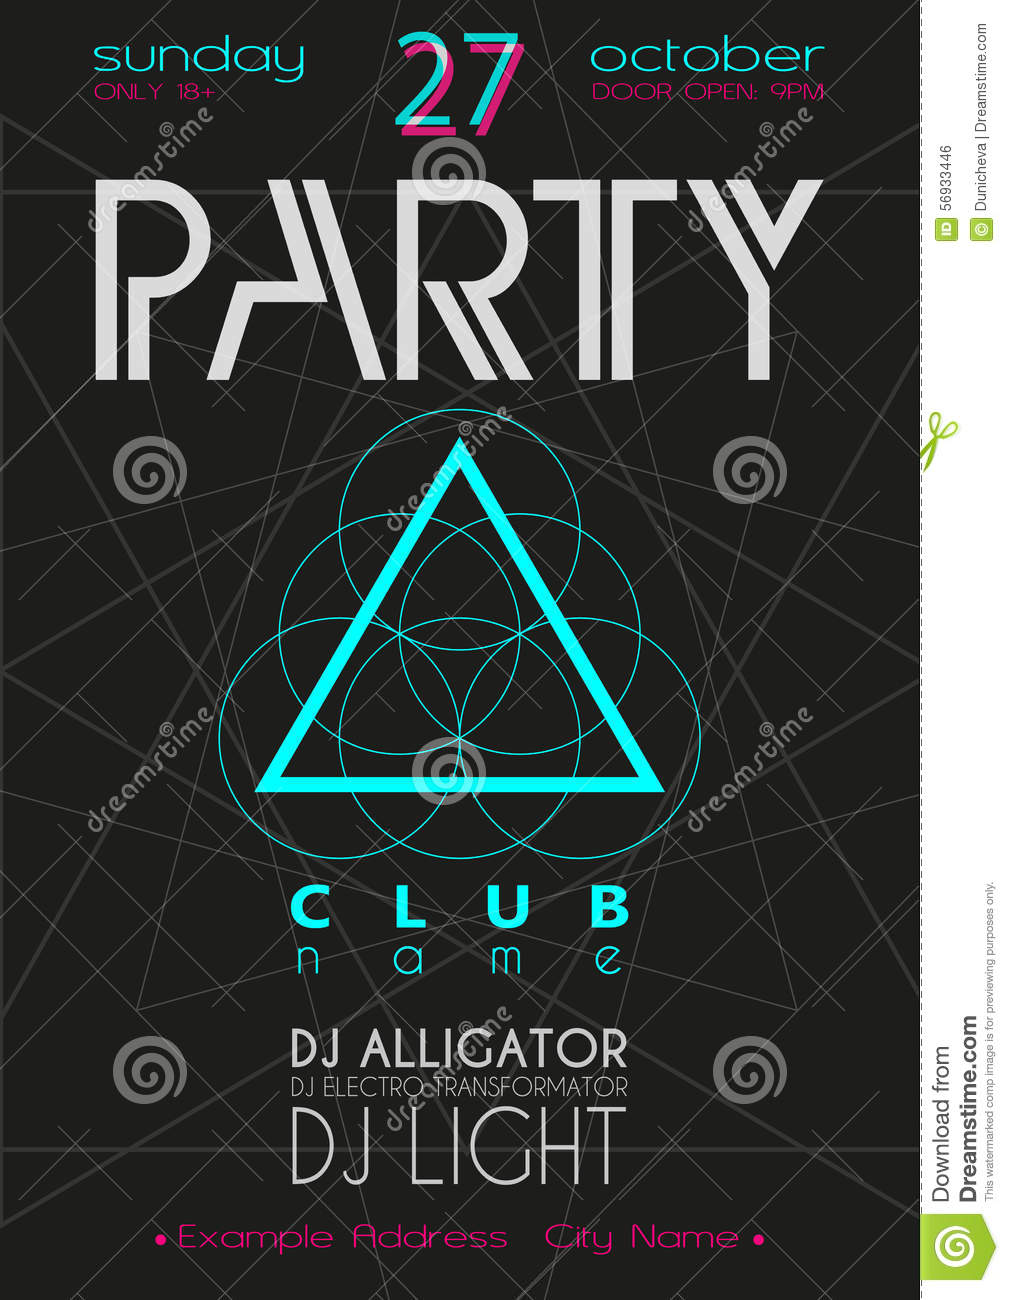 Party Flyer. Nightclub Flyer. Stock Photo - Image: 56933446